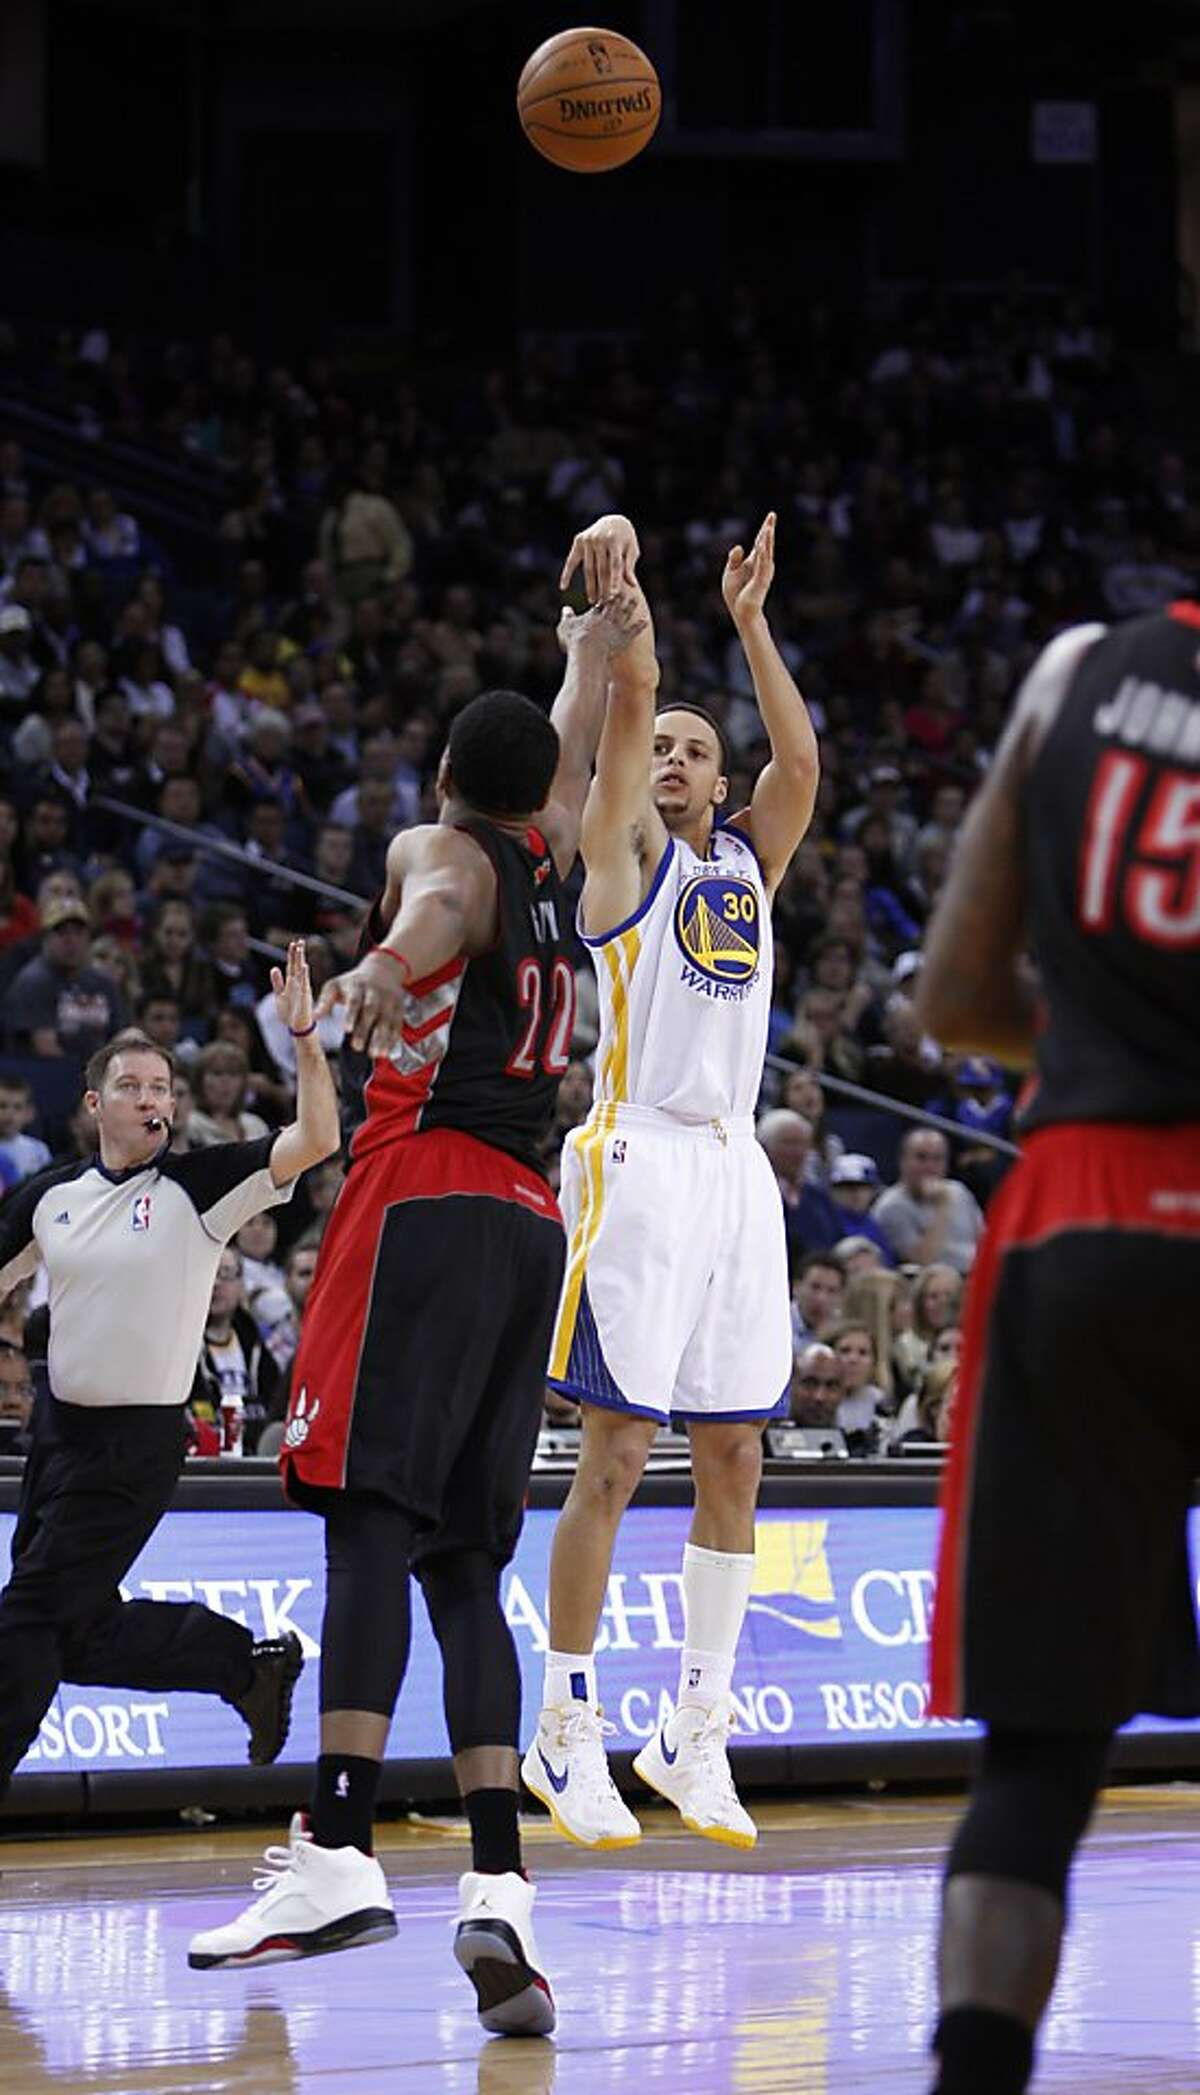 Stephen Curry (30) puts up a shot as he's guarded by Rudy Gay (22) in the second half. The Golden State Warriors played the Toronto Raptors at Oracle Arena in Oakland, Calif., on Monday, March 4, 2013.